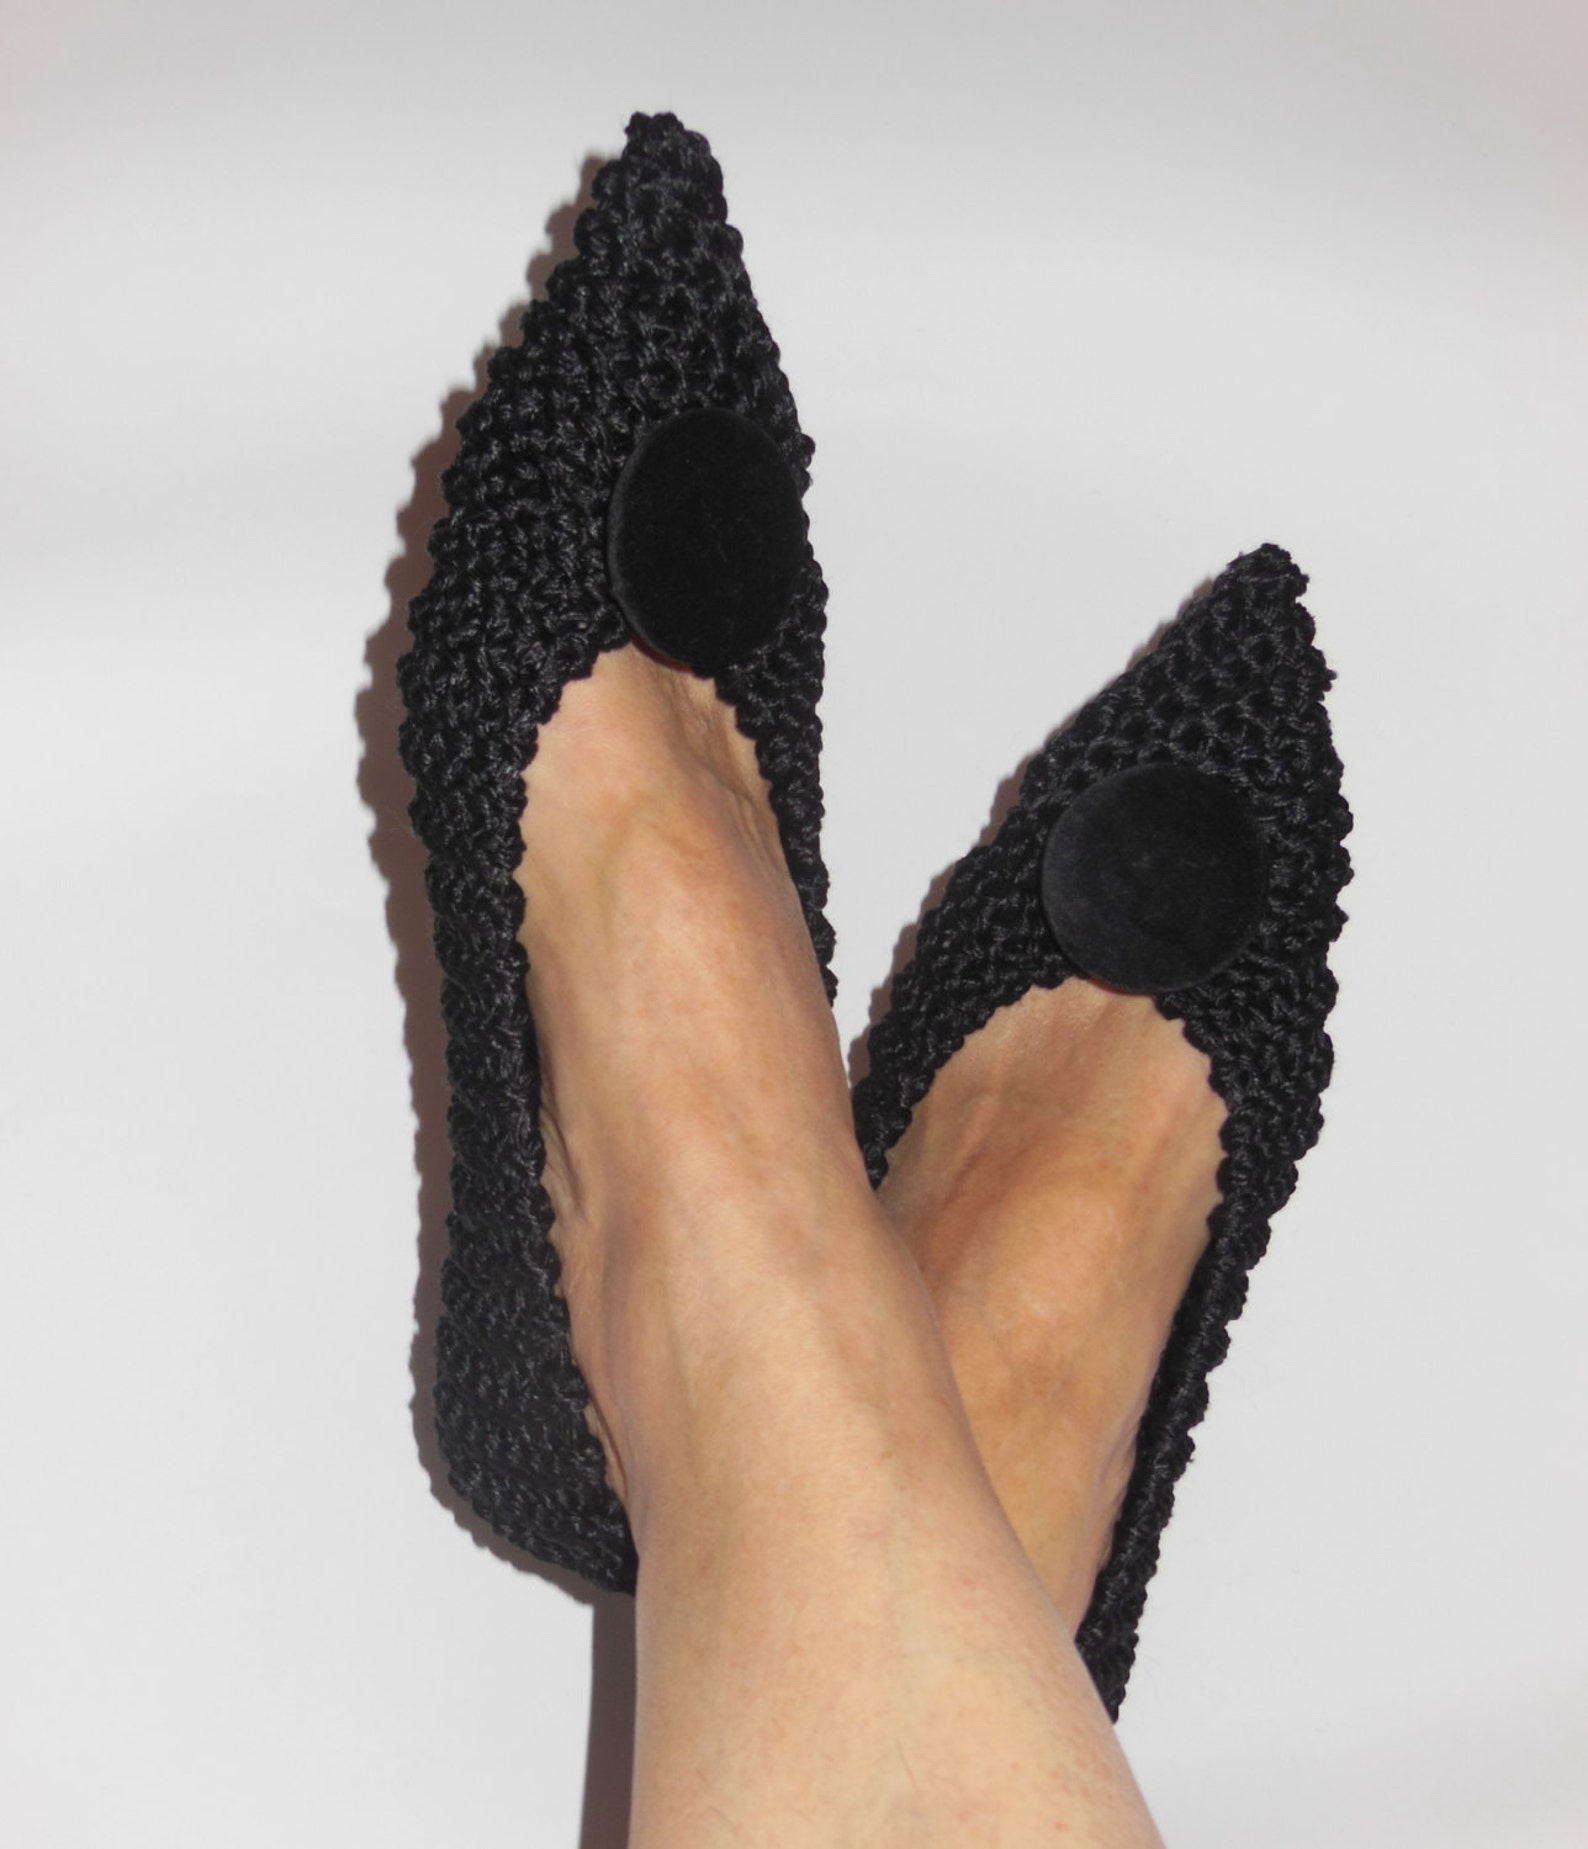 pointed toe flats, womens non-slip cotton slippers, black slippers, gift wrapping, gift for her, ballet flats, knitted, crochet